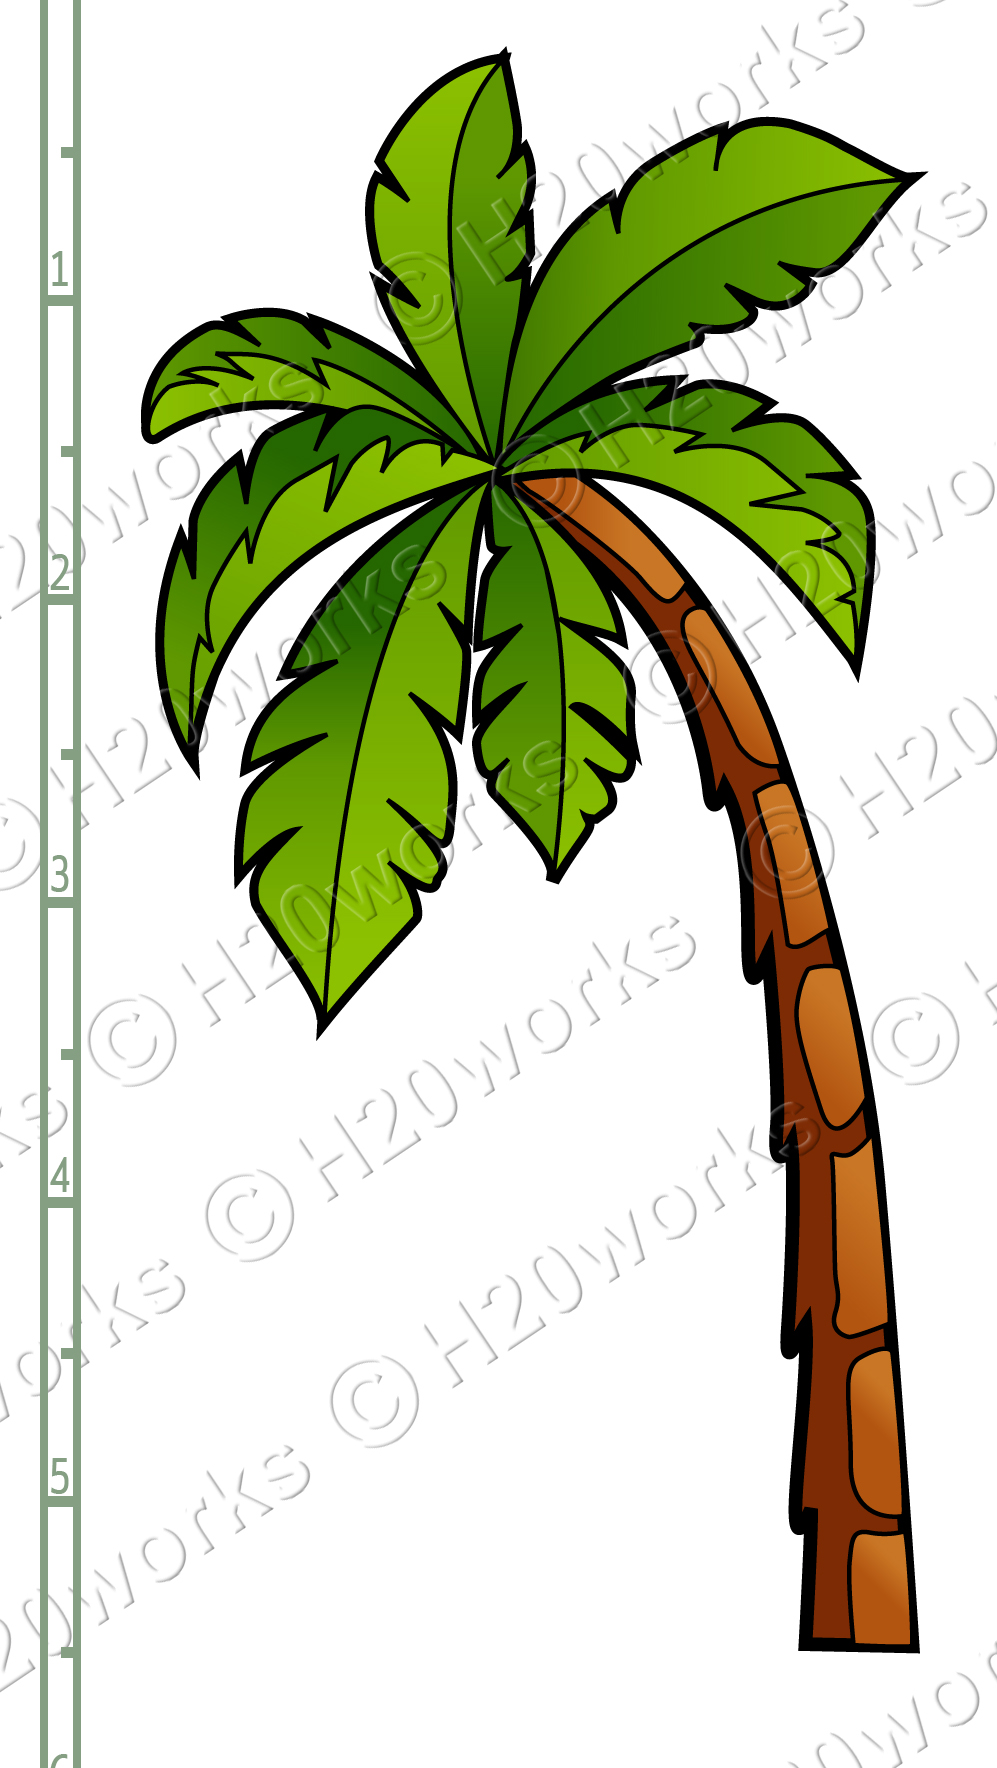 Tree Without Leaves Clipart | Free download best Tree ... graphic free library